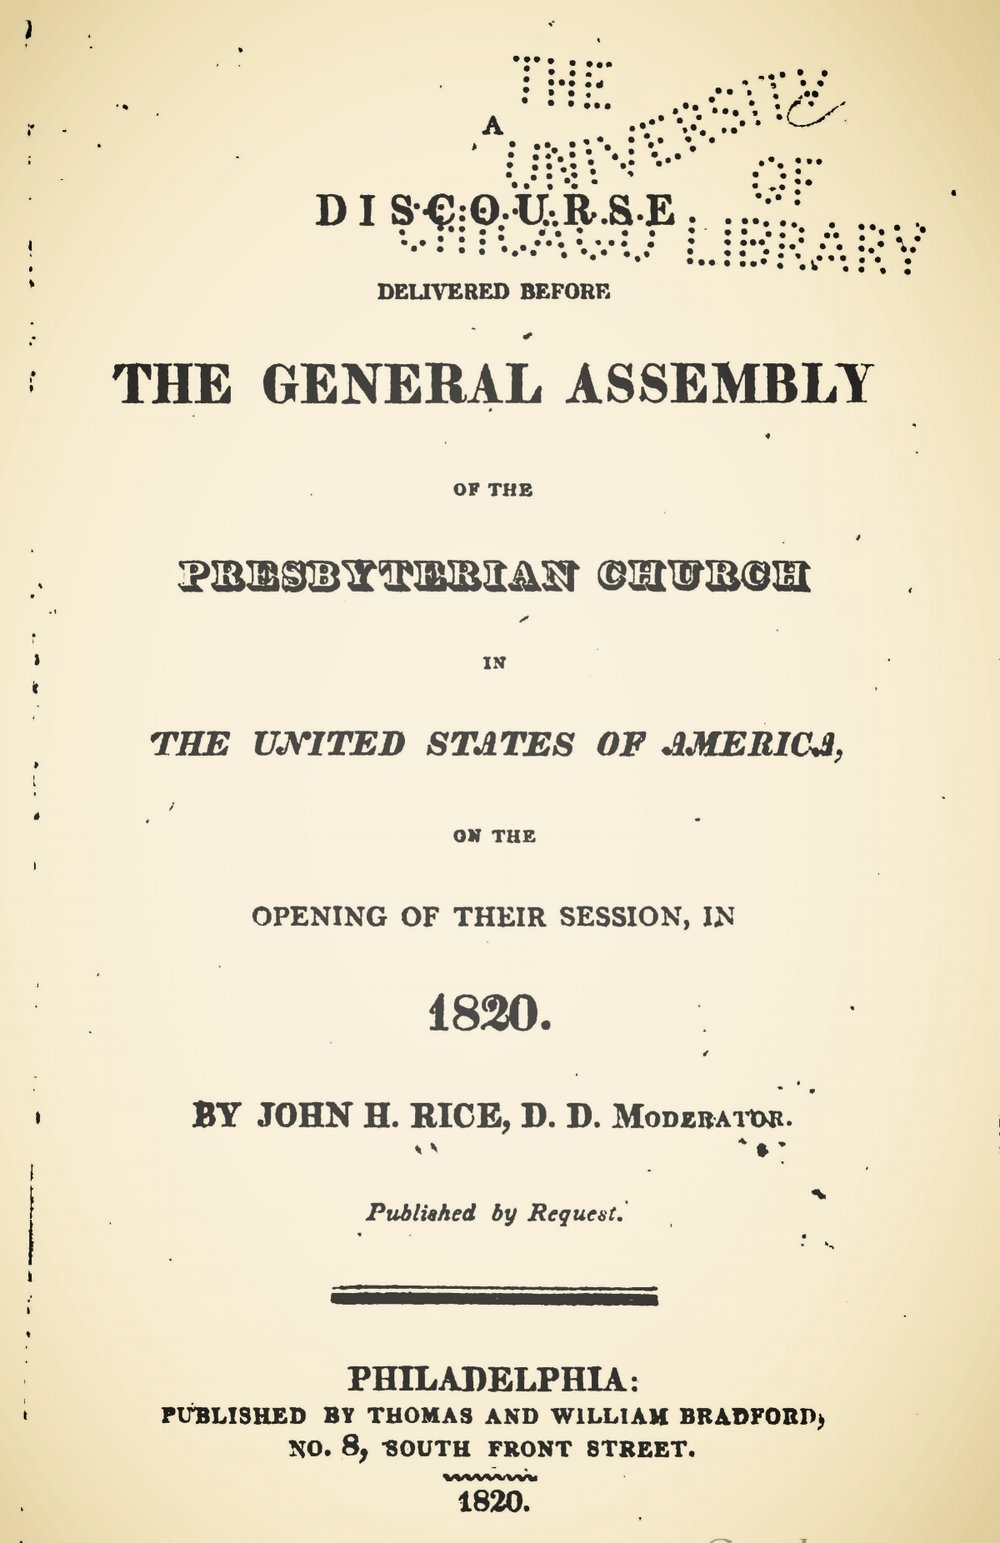 Rice, John Holt, A Discourse Delivered Before the General Assembly Title Page.jpg